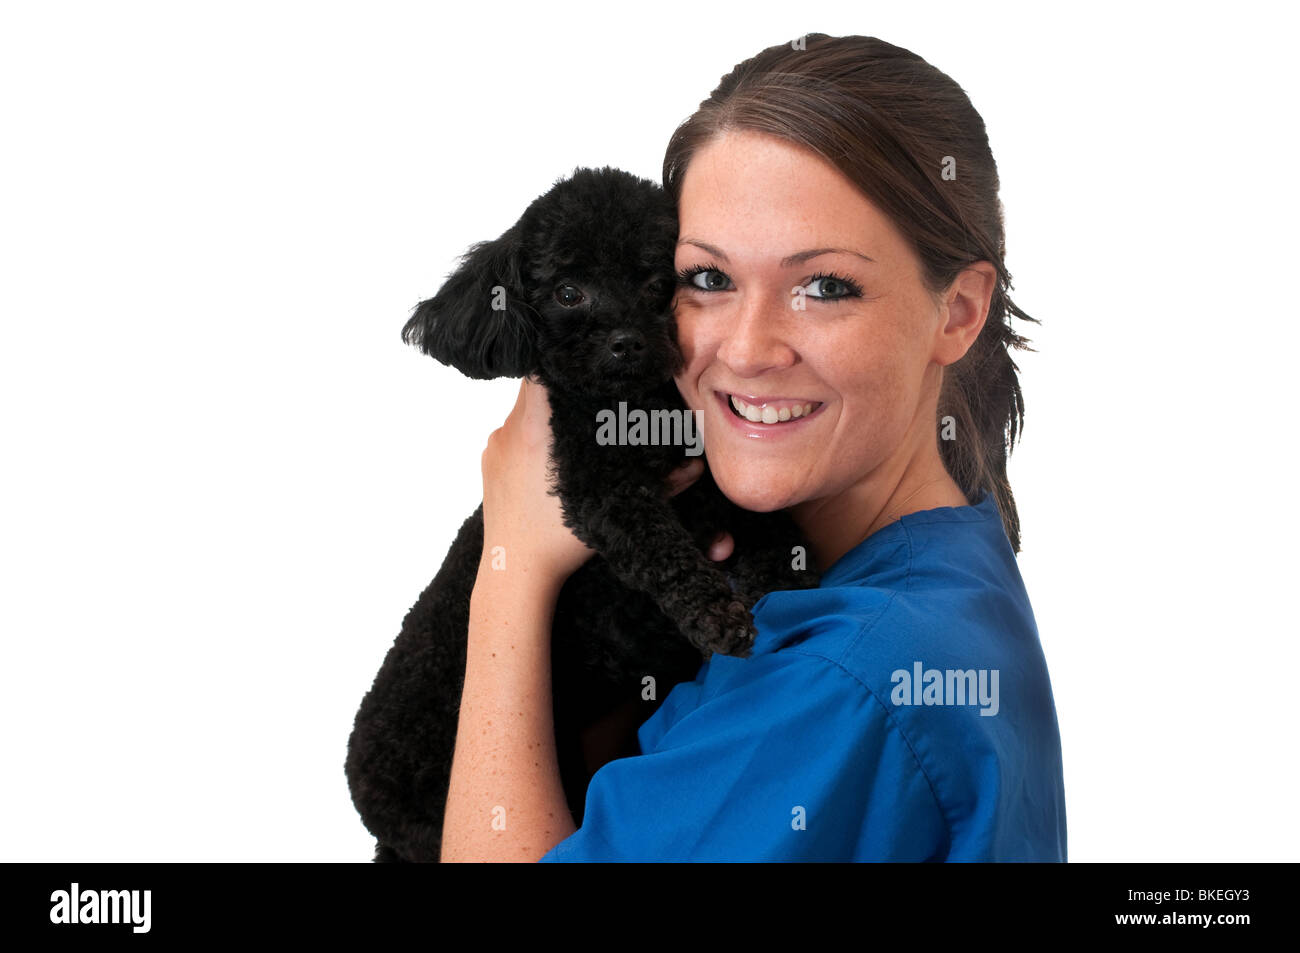 Veterinary assistant holding pet dog isolated. - Stock Image